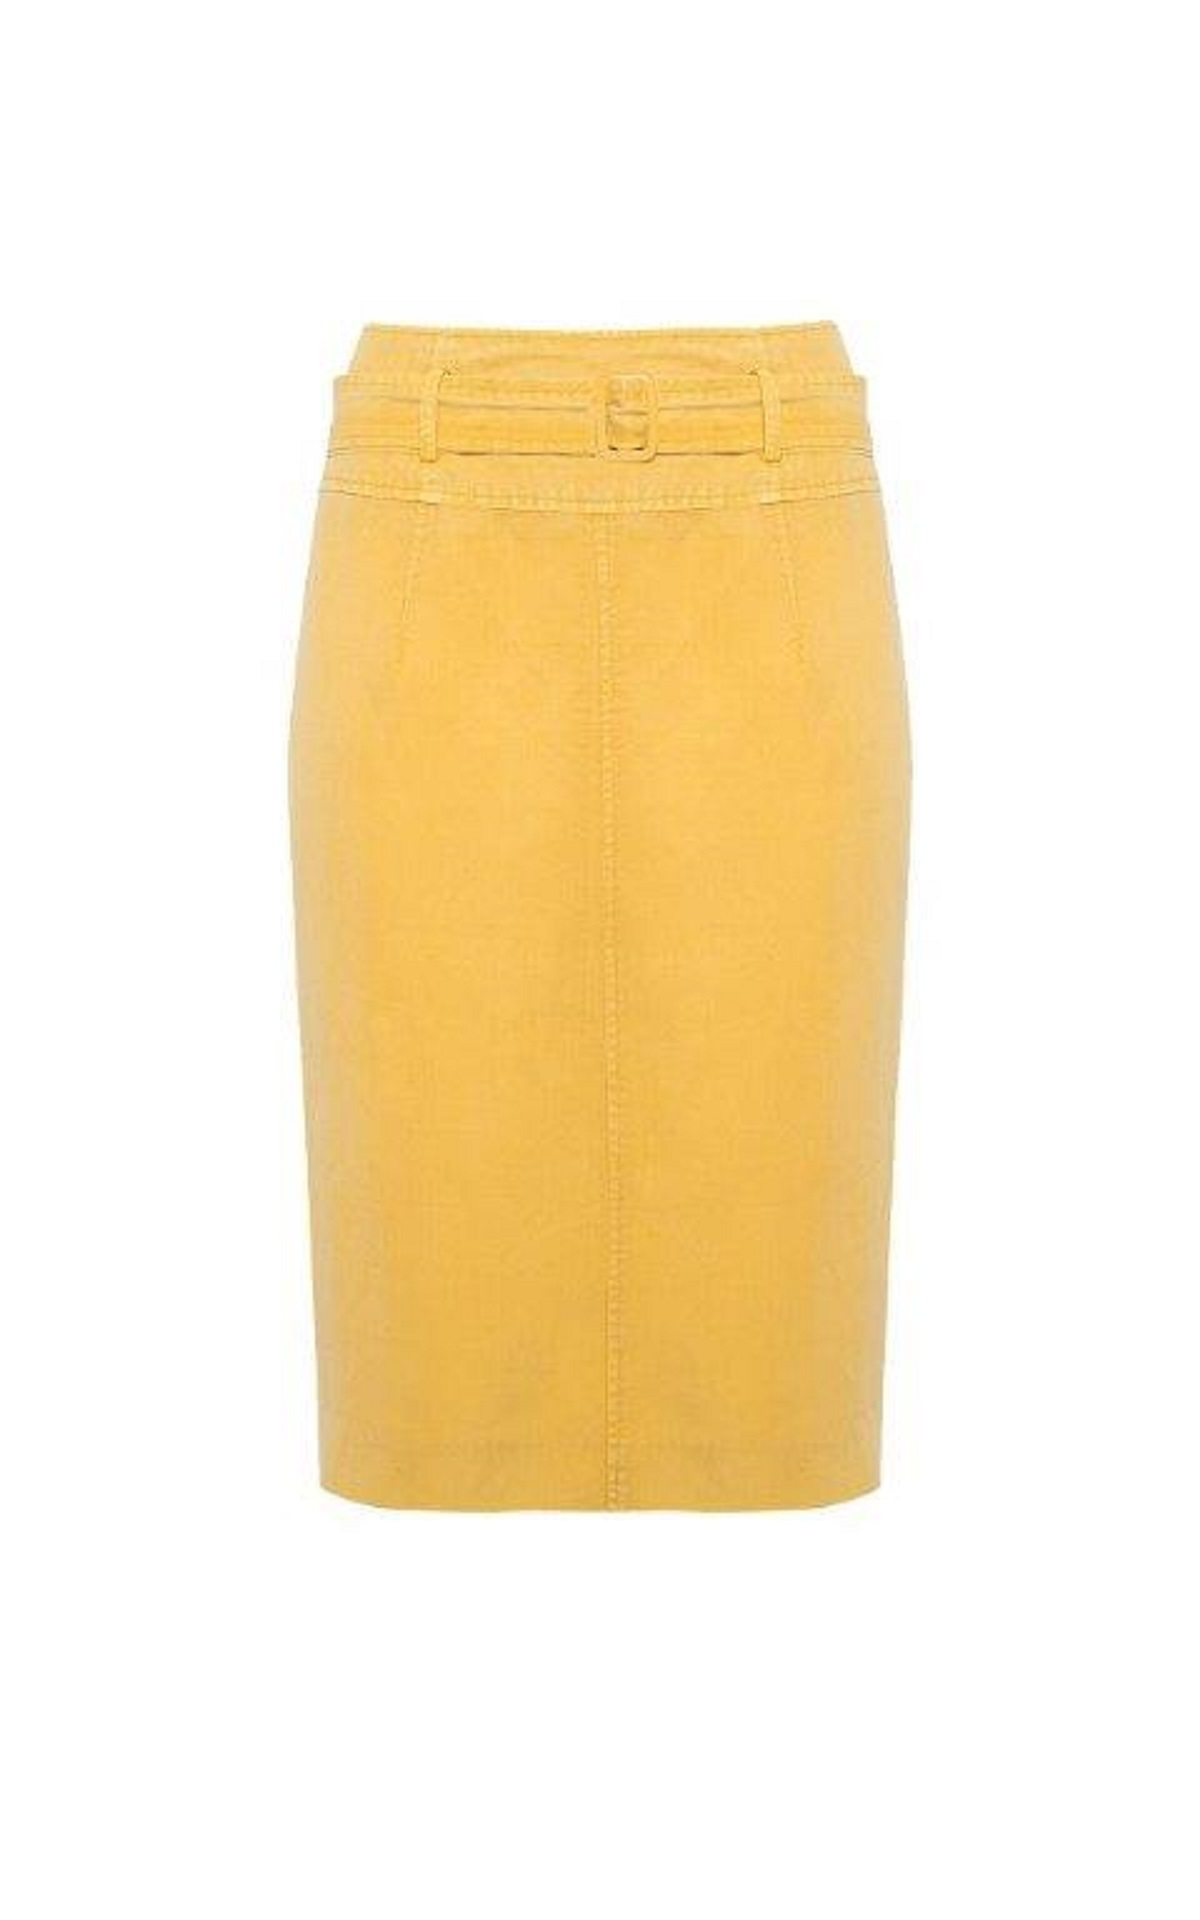 Yellow linen skirt Roberto Verino